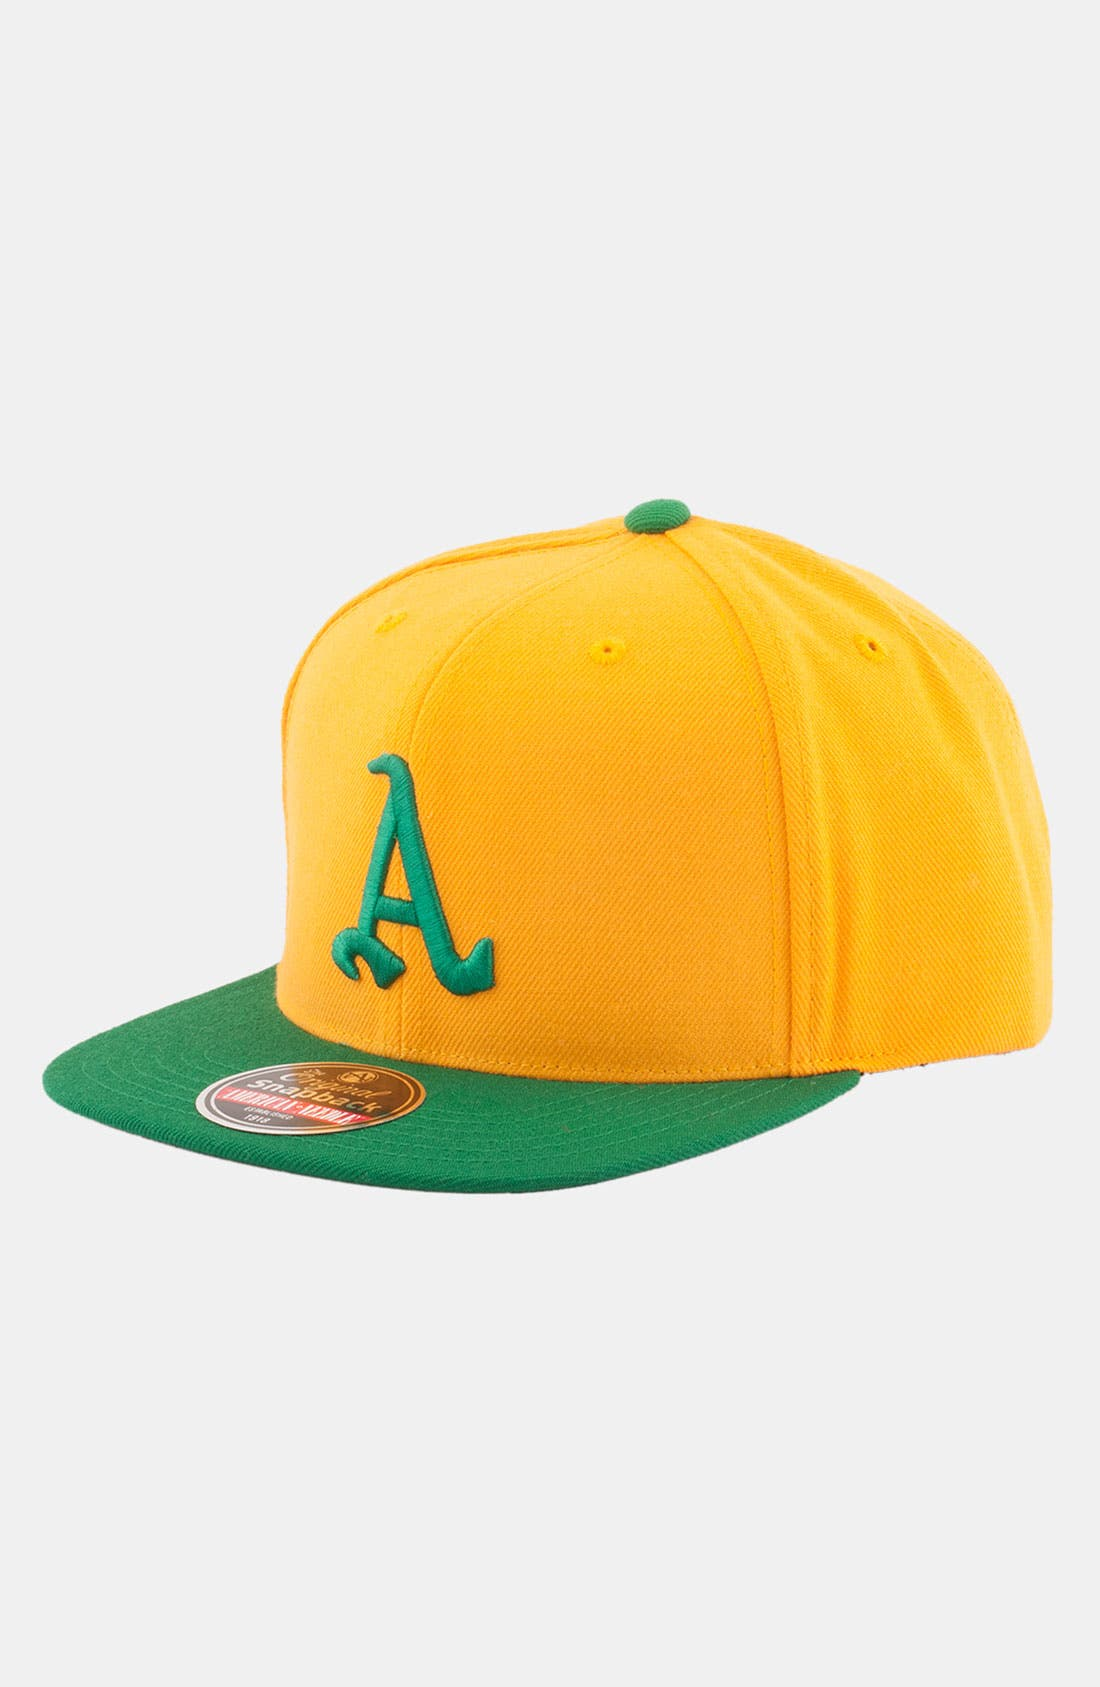 Main Image - American Needle 'Oakland Athletics - Cooperstown' Snapback Baseball Cap